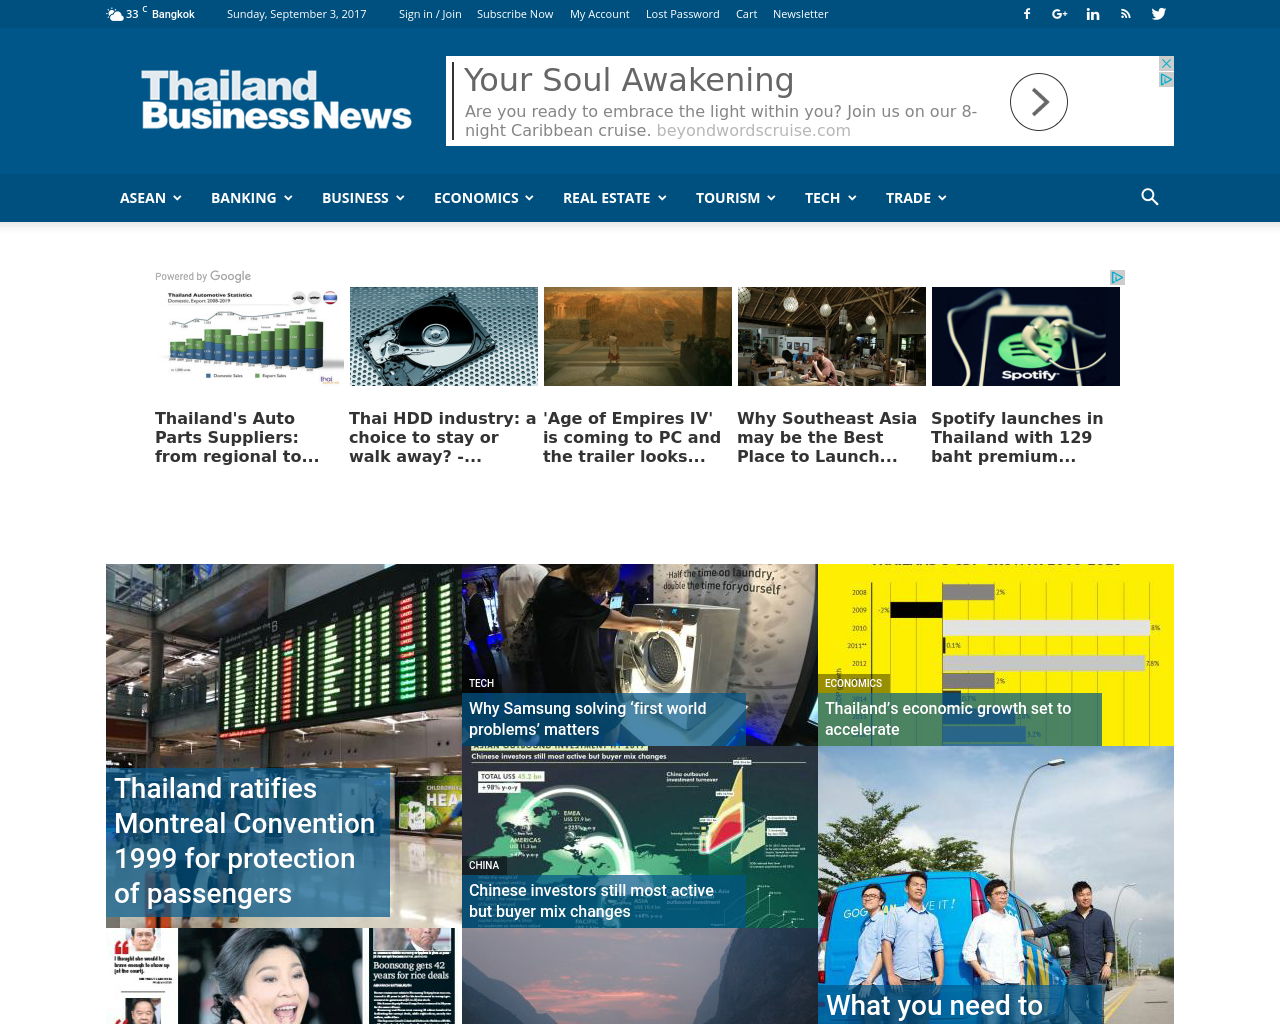 Thailand-Business-News-Advertising-Reviews-Pricing